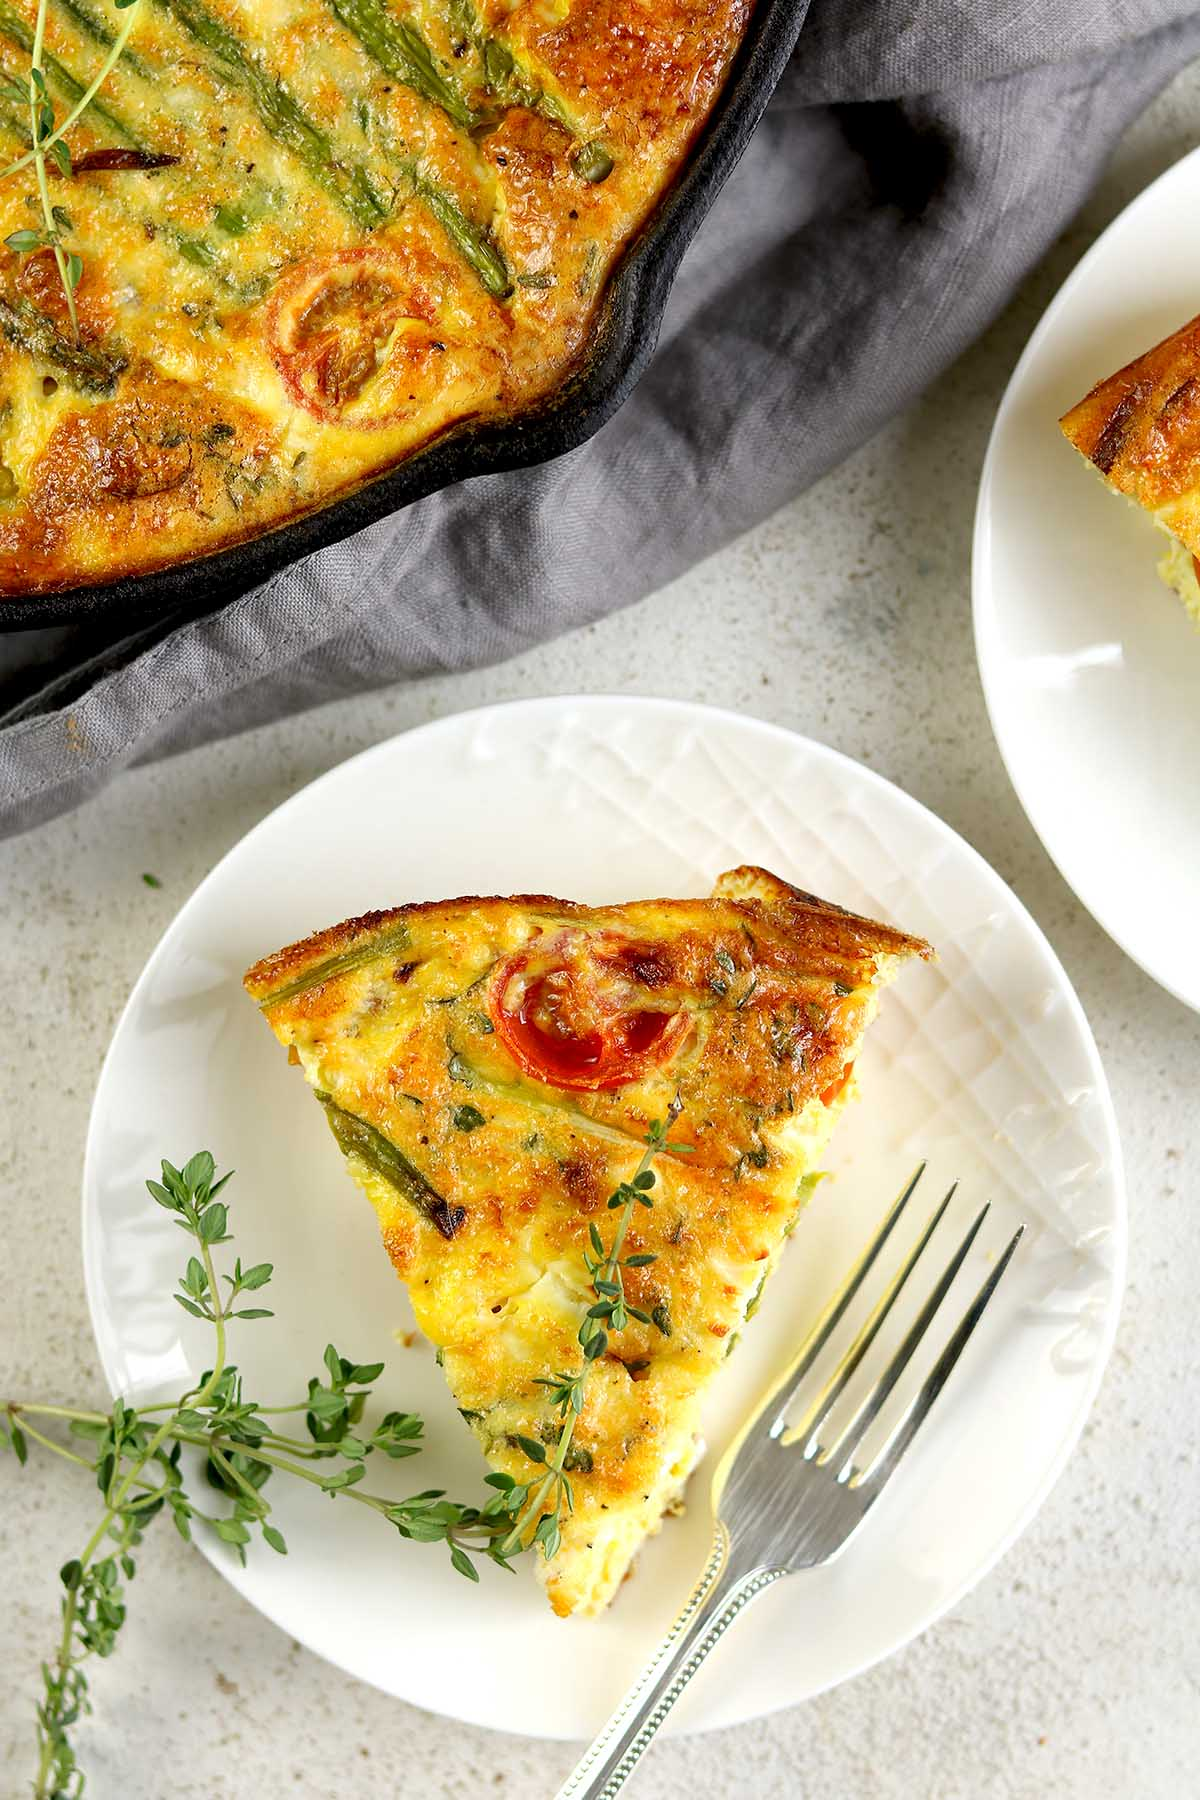 slice of frittata on a plate